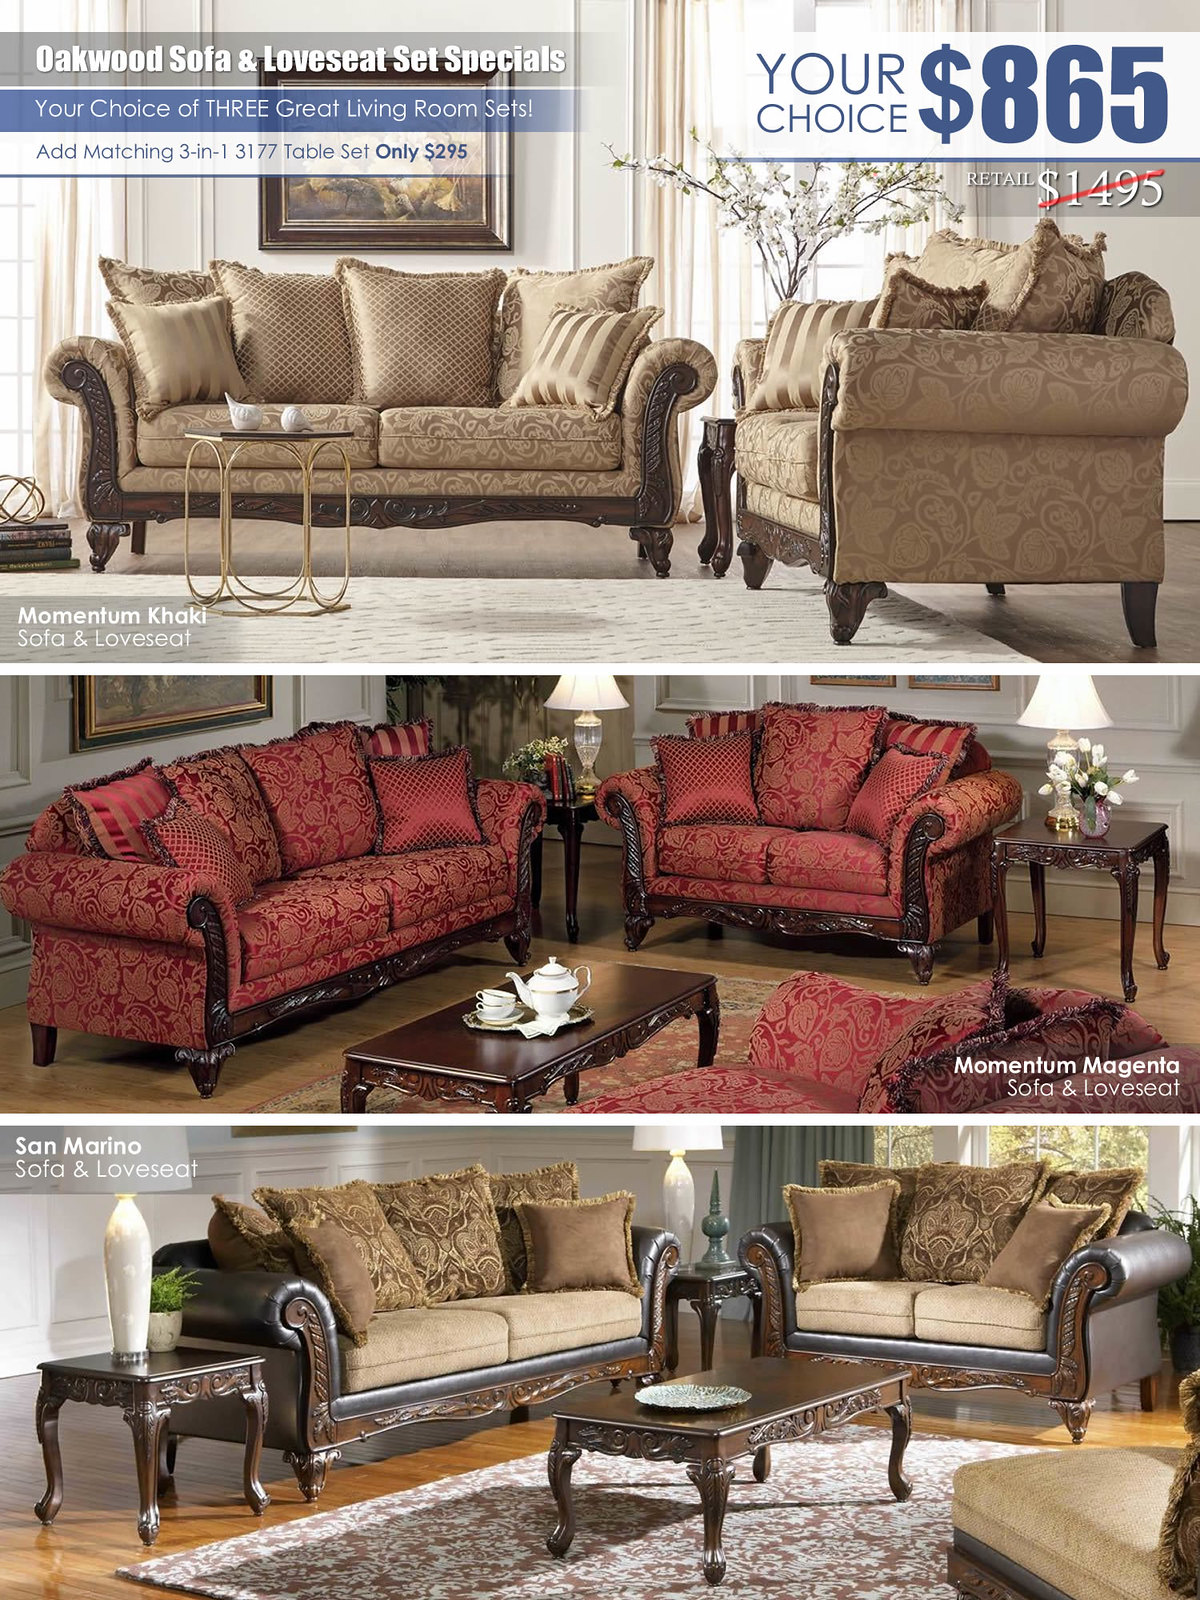 Oakwood Sofa & Loveseat Set Specials_2019